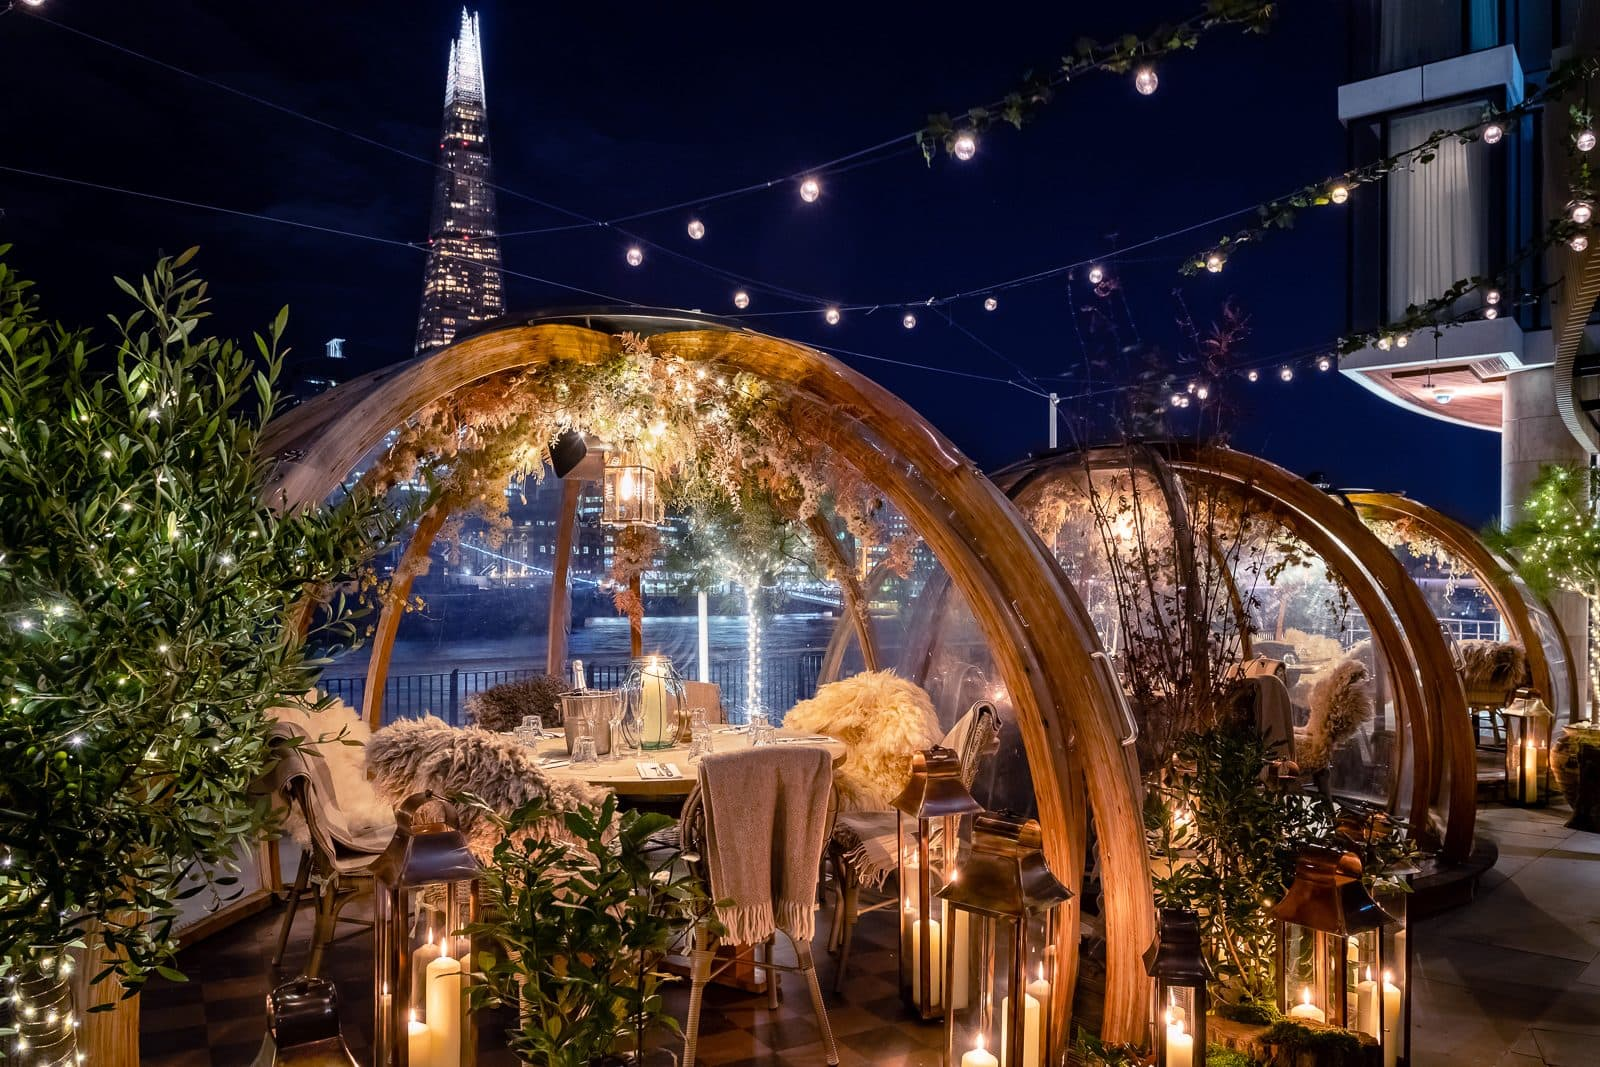 Cosy candlelit igloos at Coppa, London